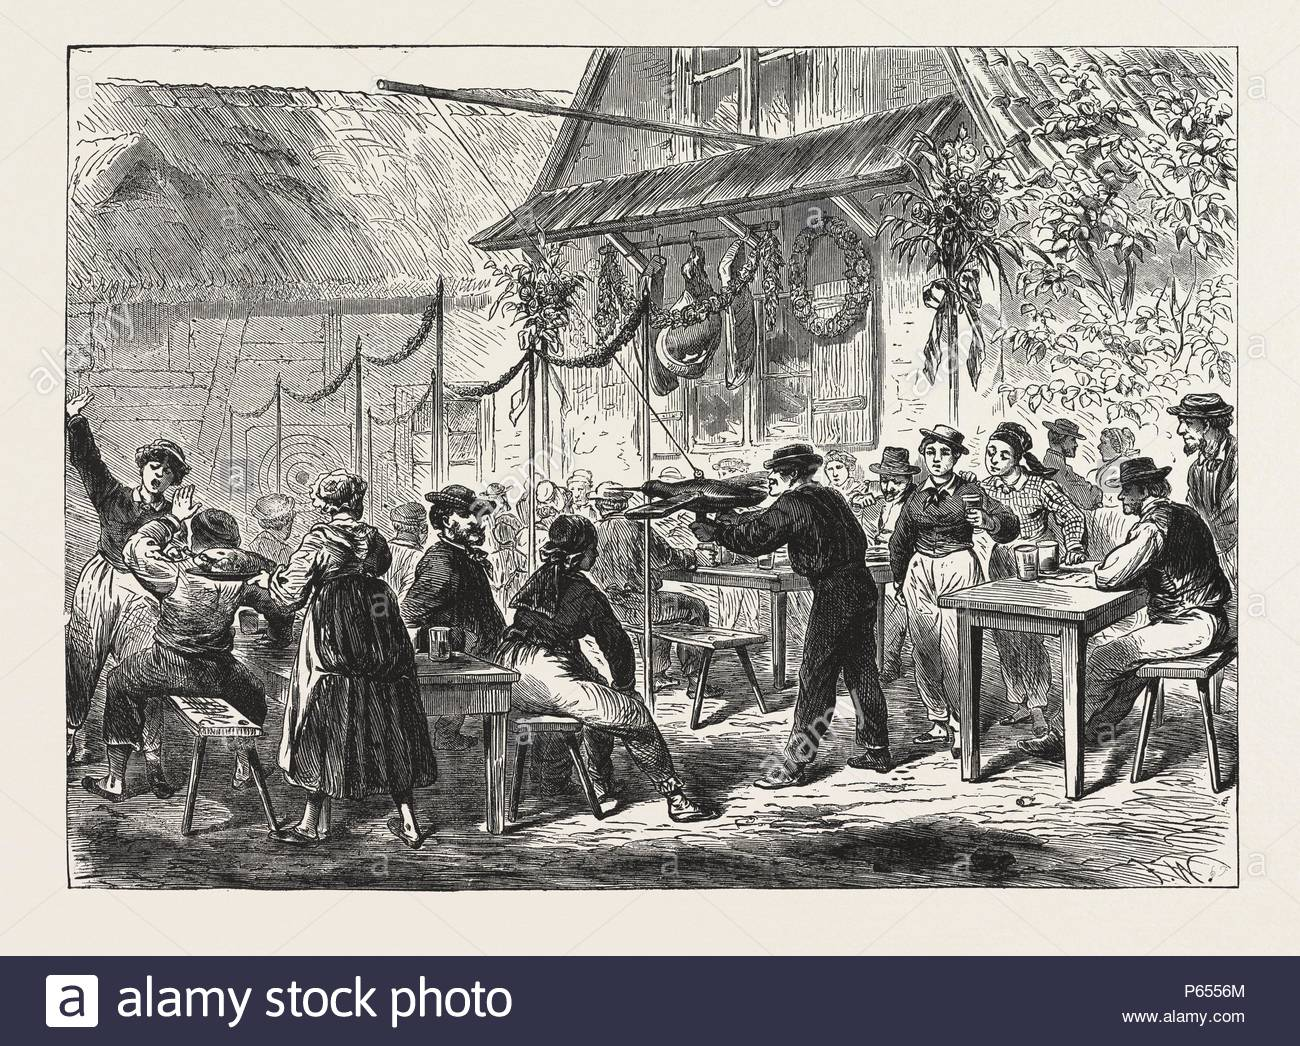 WHITSUNTIDE SPORTS IN BELGIUM: THE GAME OF THE TARGET, ENGRAVING 1876. - Stock Image